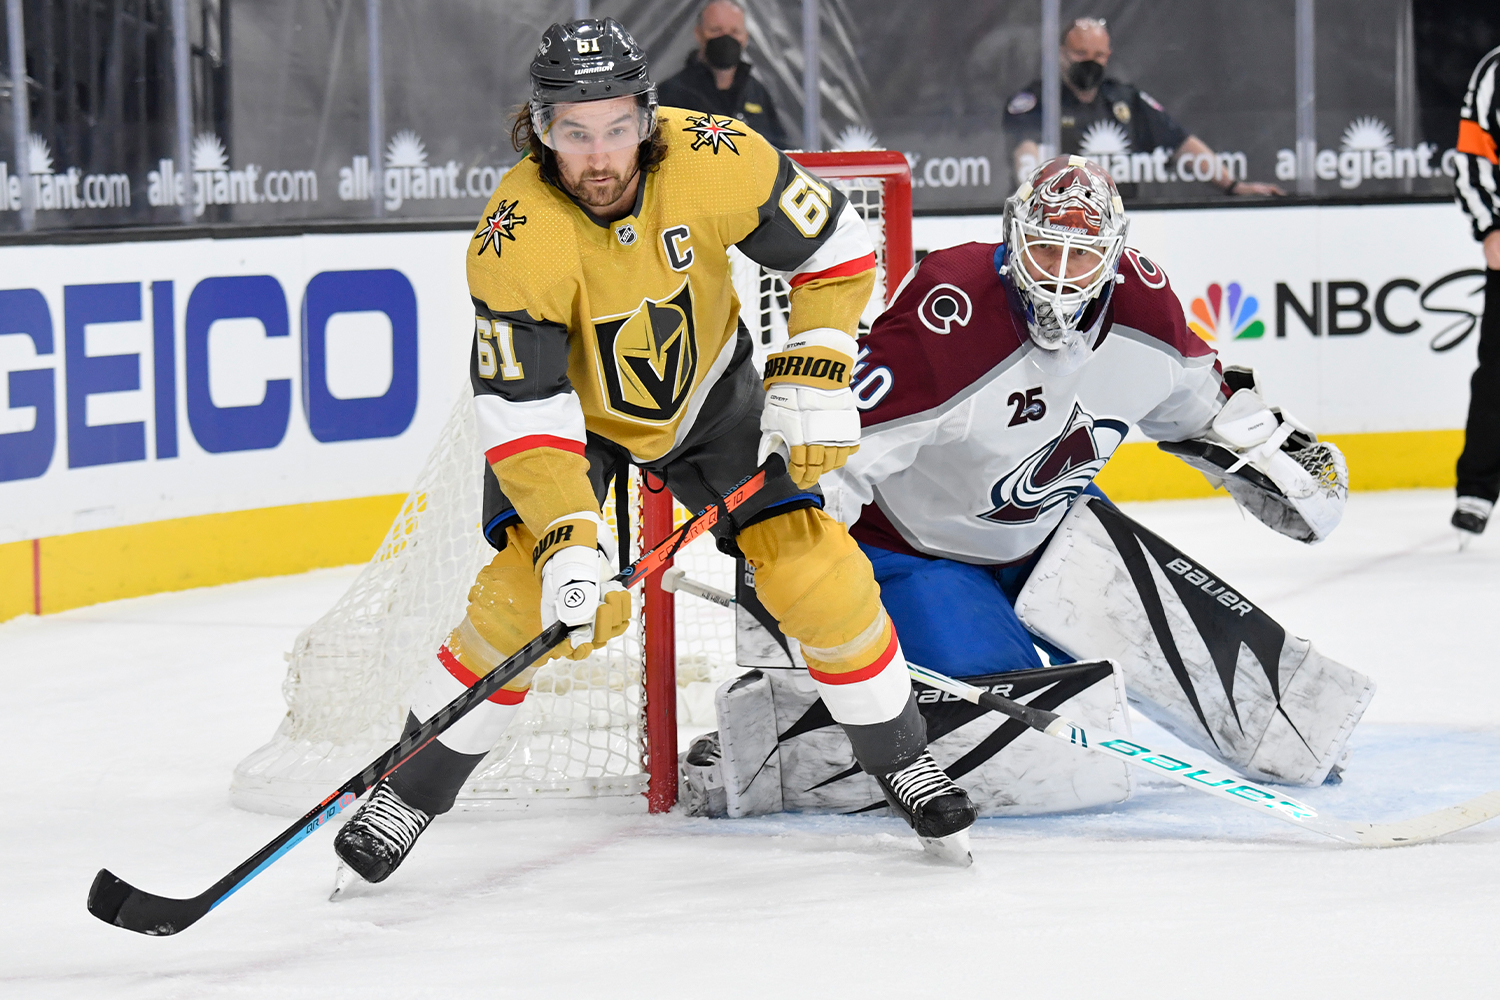 Mark Stone #61 of the Vegas Golden Knights skates during the first period against the Colorado Avalanche at T-Mobile Arena on April 28, 2021